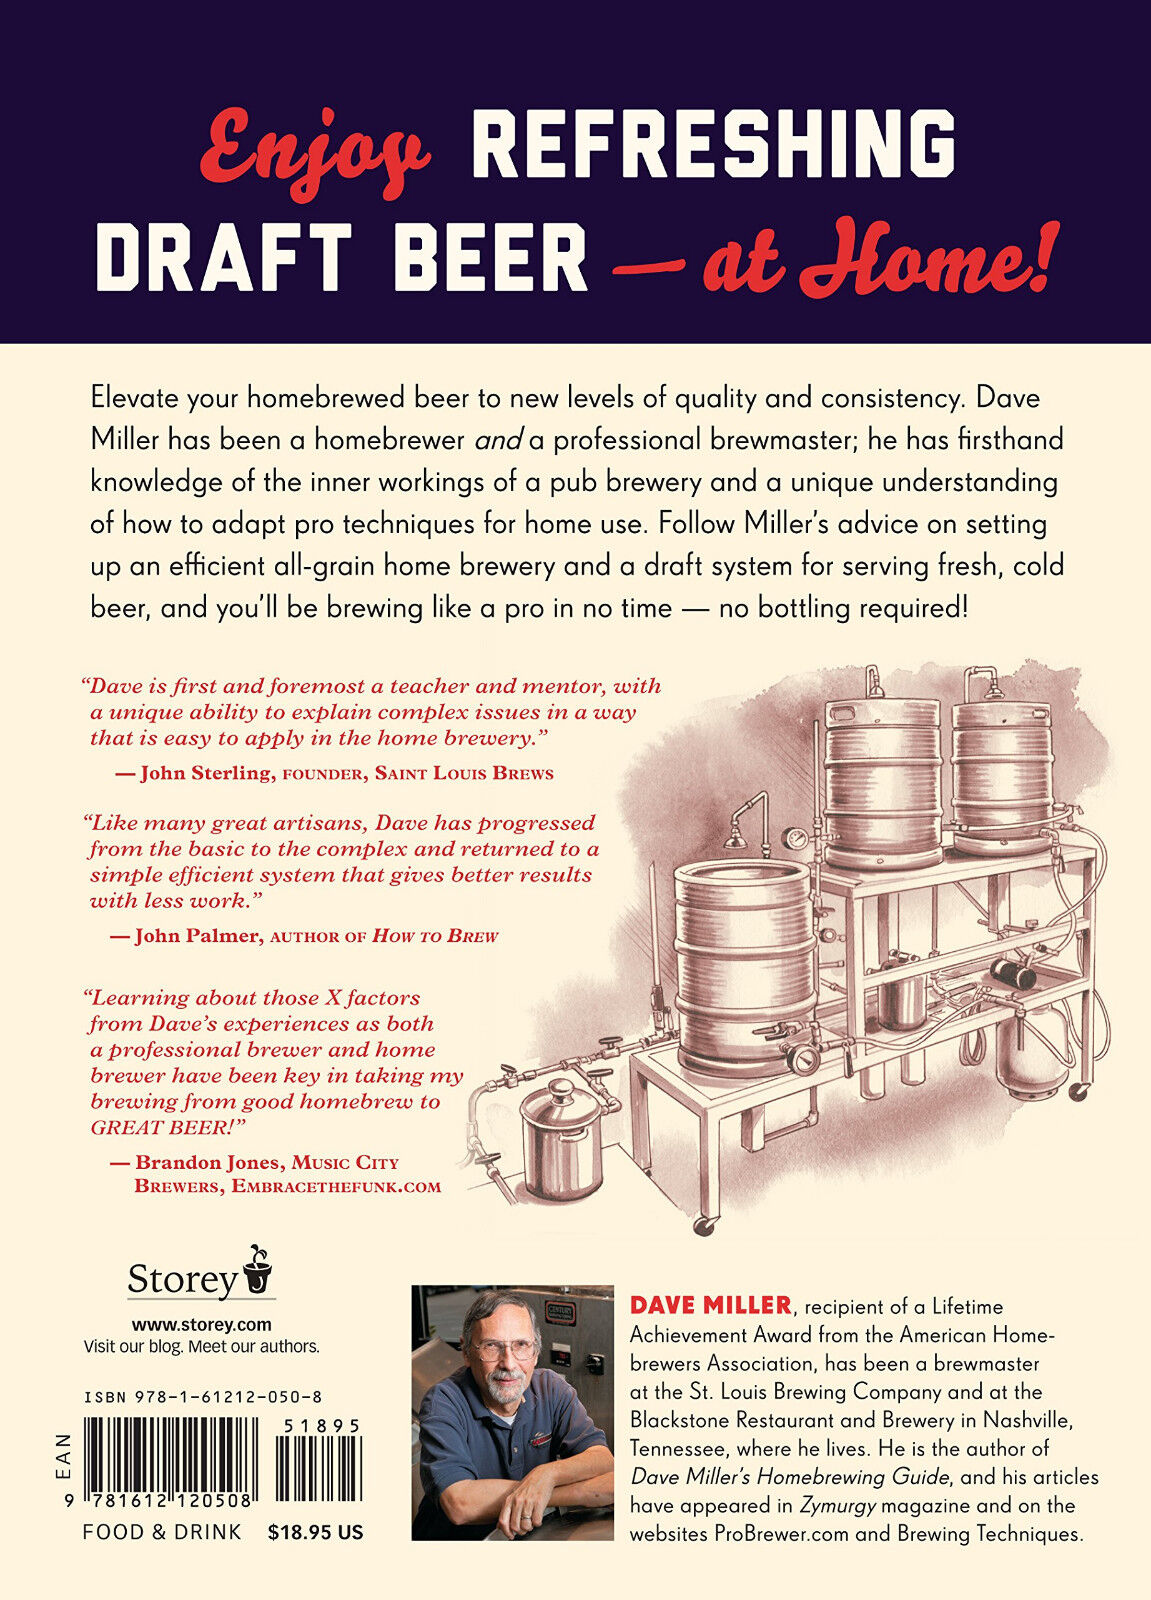 Brew Like A Pro : Make Pub-Style Draft Beer At Home (pb) Dave Miller New w/rm*